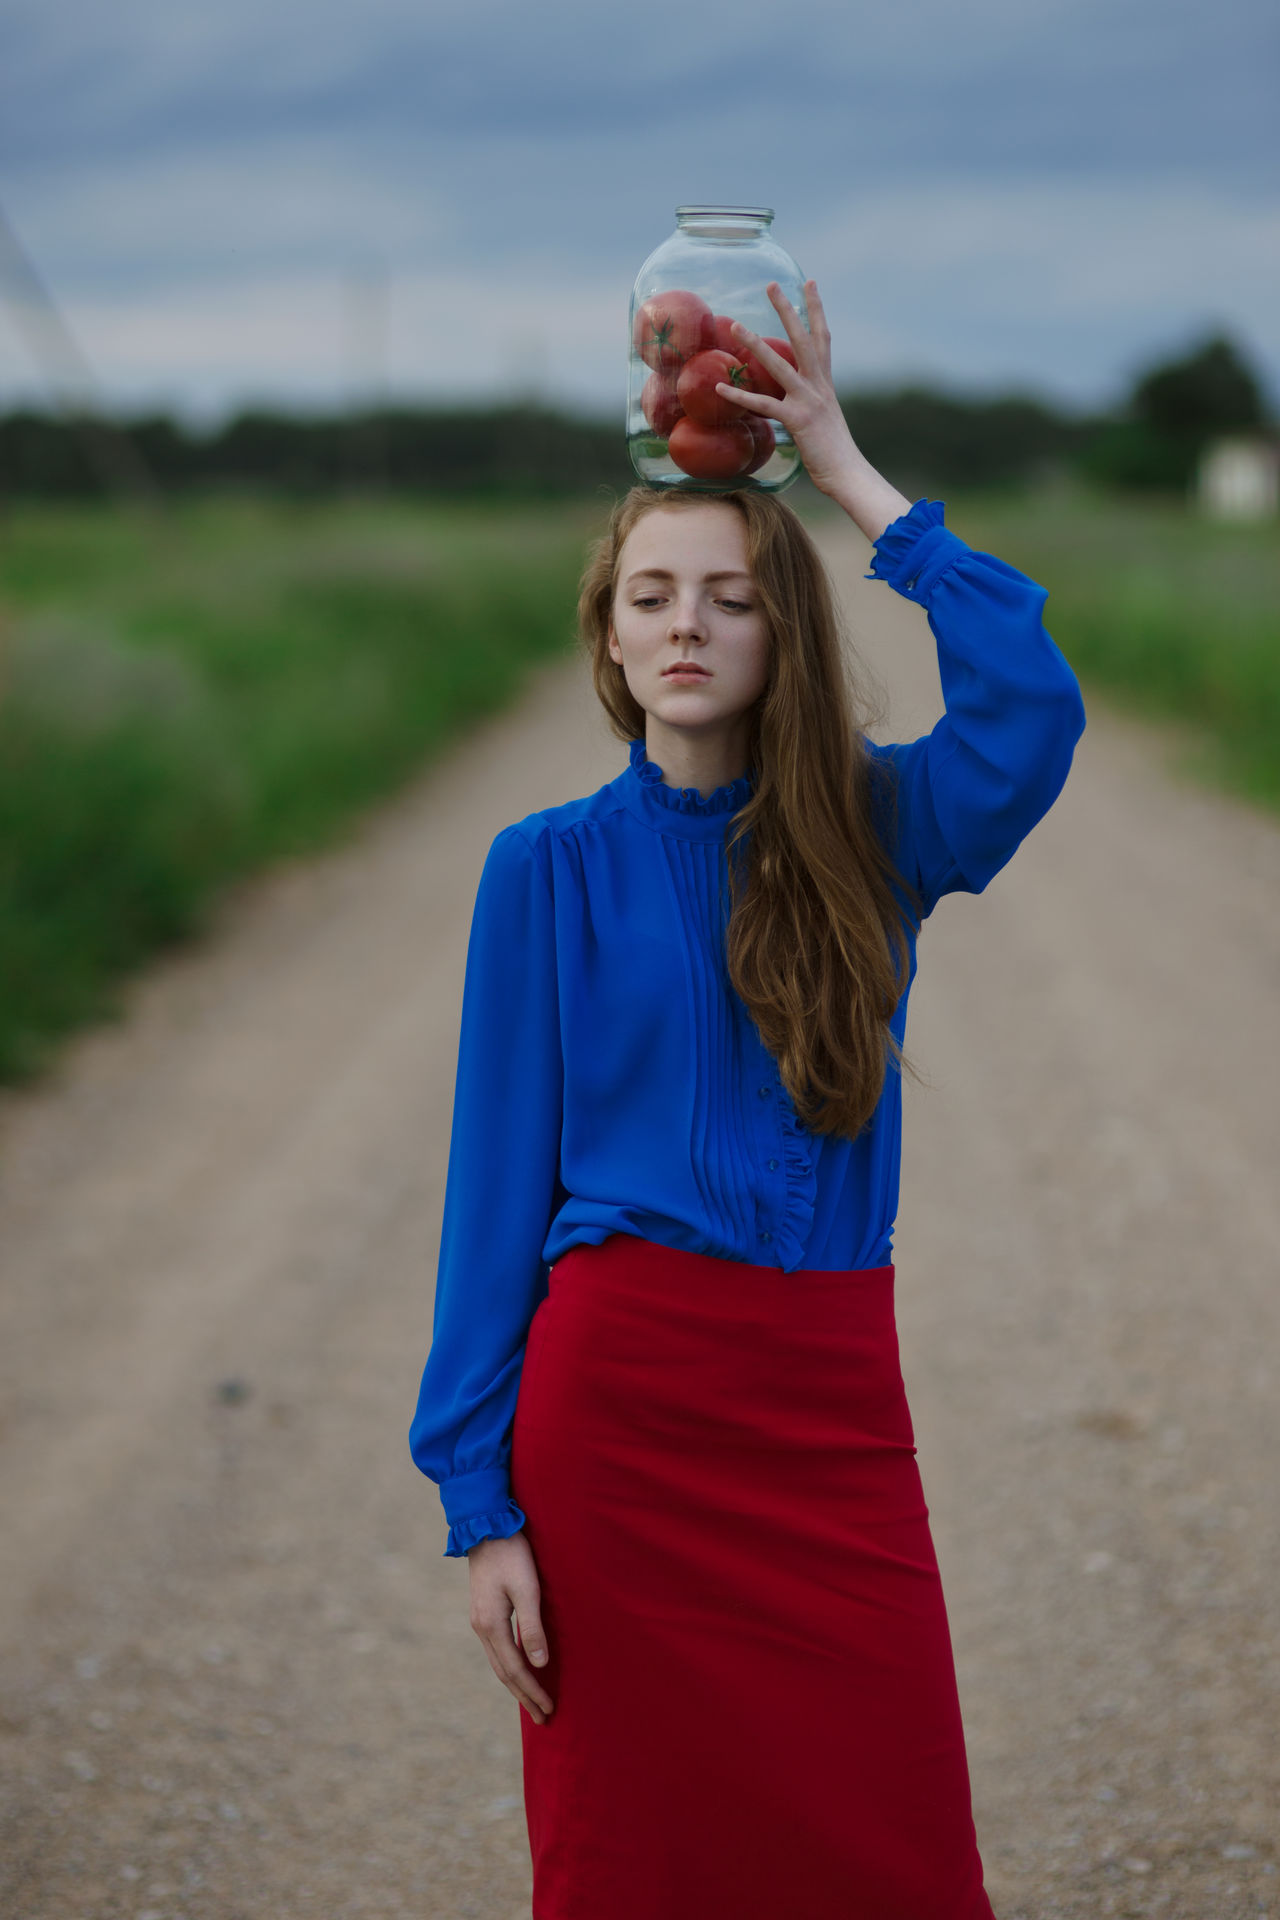 https://www.instagram.com/eglelaurinavice/ Blue Casual Clothing Countryside Day Focus On Foreground Folk Front View Girl Leisure Activity Lifestyles Nature One Person Outdoors Portrait Of A Woman Real People Red Sky Standing Woman Women Who Inspire You Young Adult Young Women